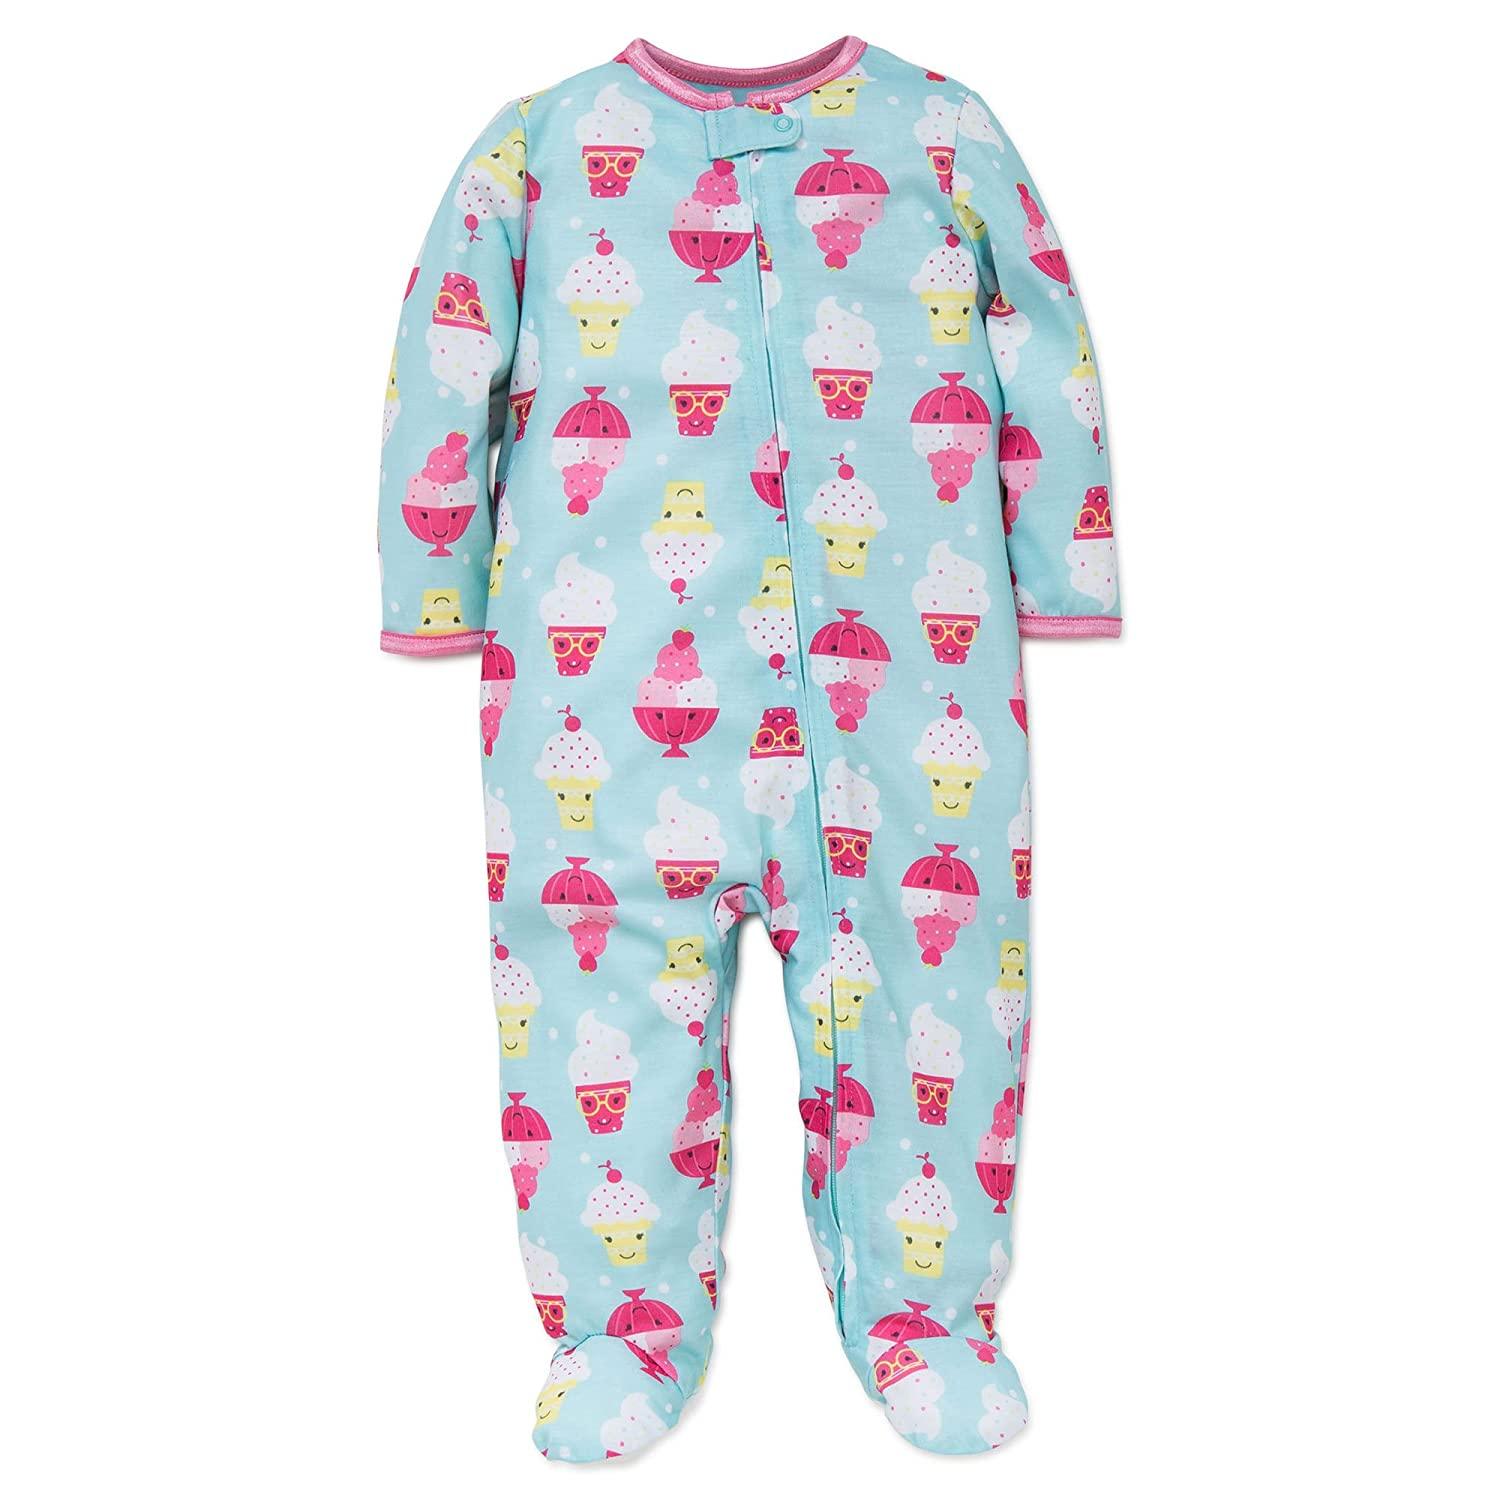 2a148a9c2 Amazon.com  Little Me Baby Girl Ice Cream Soft Zip Footie Pajamas ...